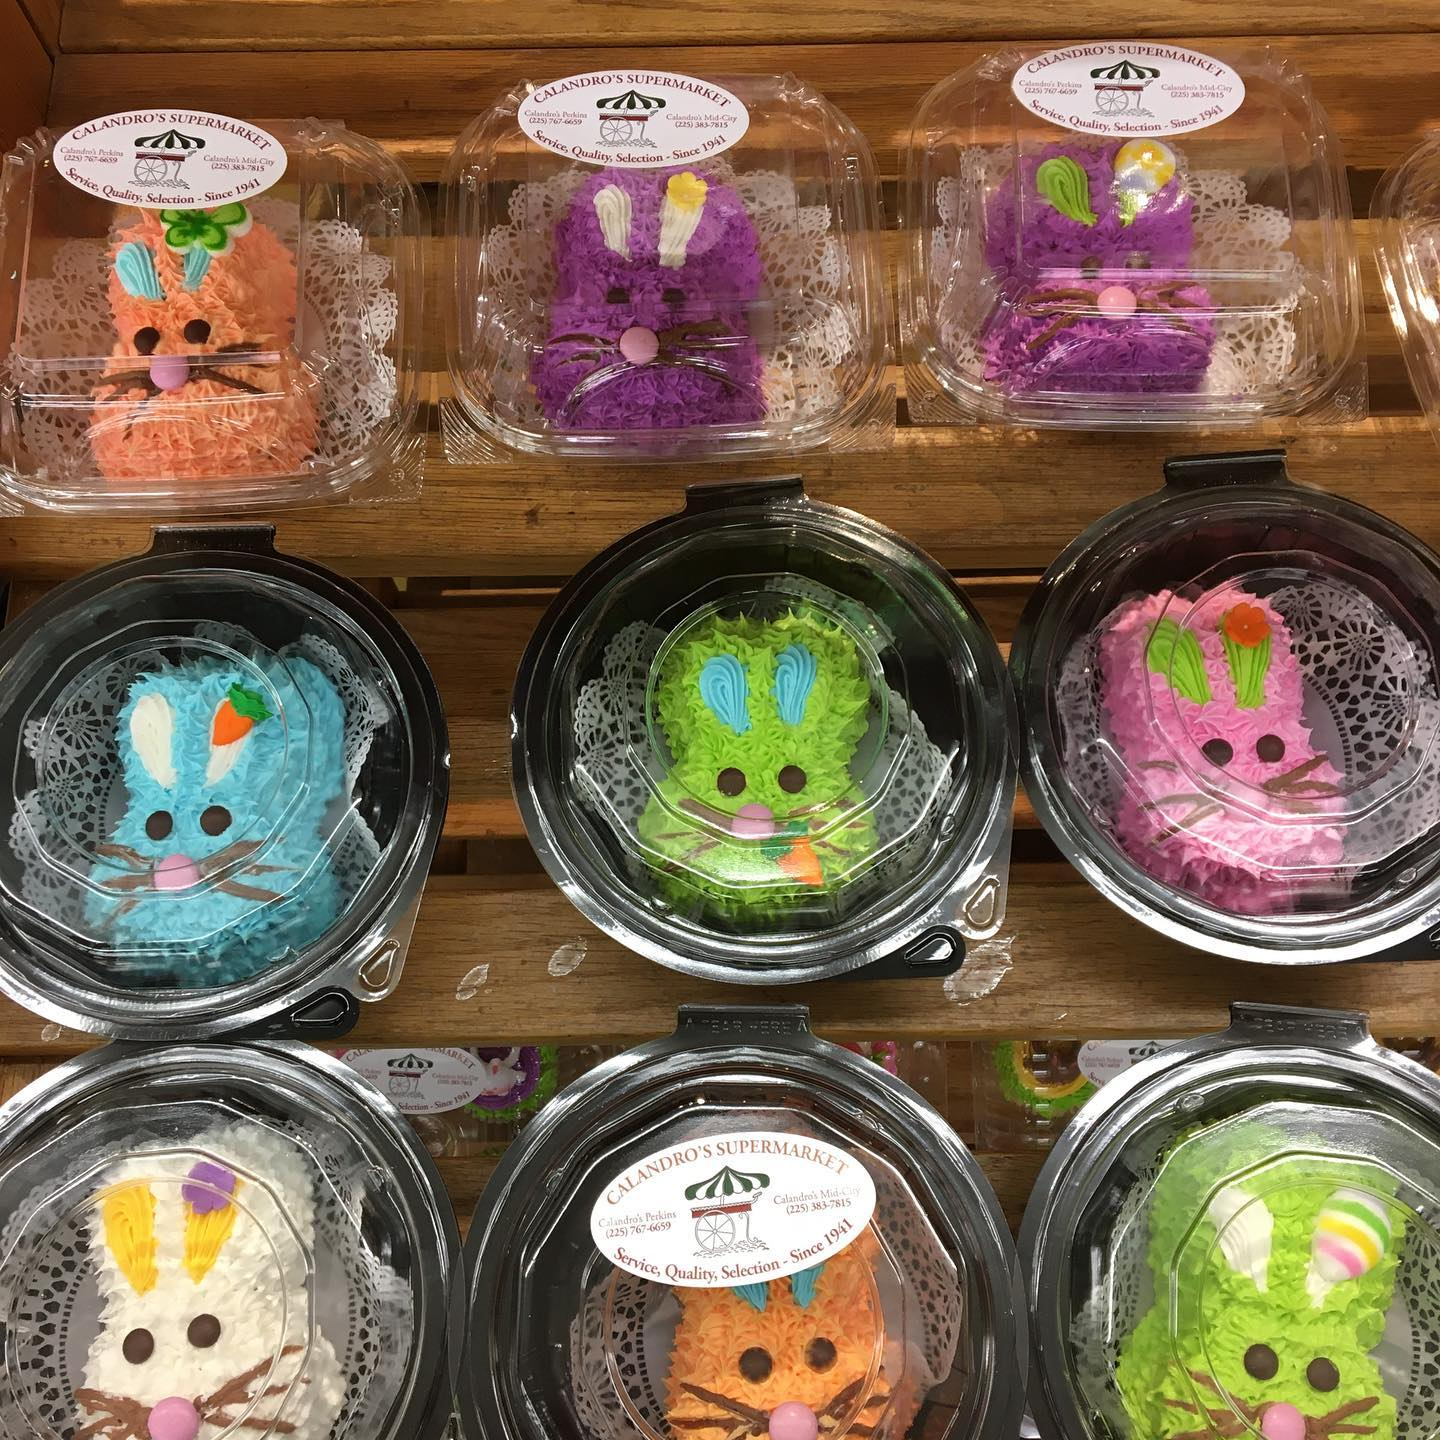 Hop on over to Calandro's Mid-City – the Easter Bunny dropped off some handcrafted, homemade,